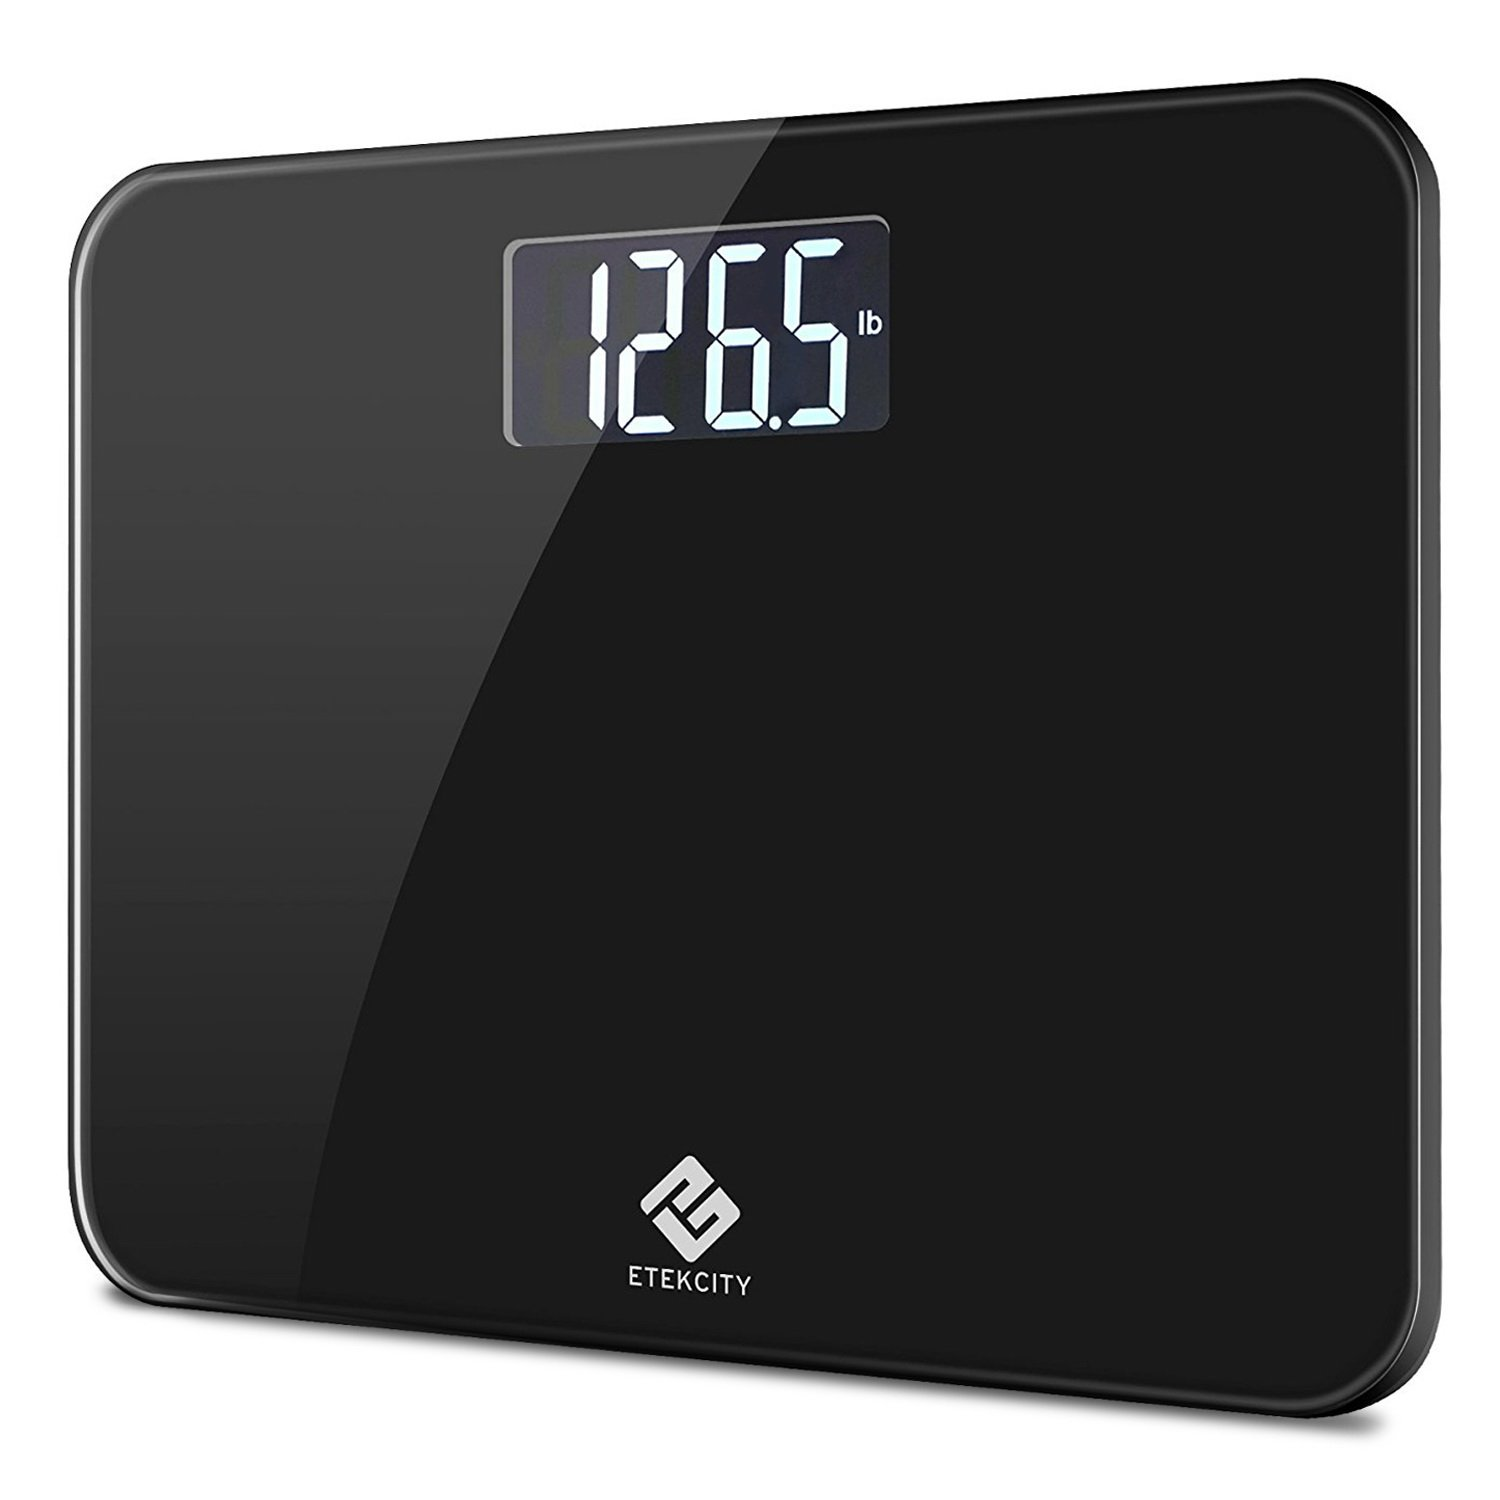 Etekcity Digital Body Weight Bathroom Scale with Step-On Technology, 440 Pounds, Body Tape Measure Included (Black) EB441OB by Etekcity (Image #1)